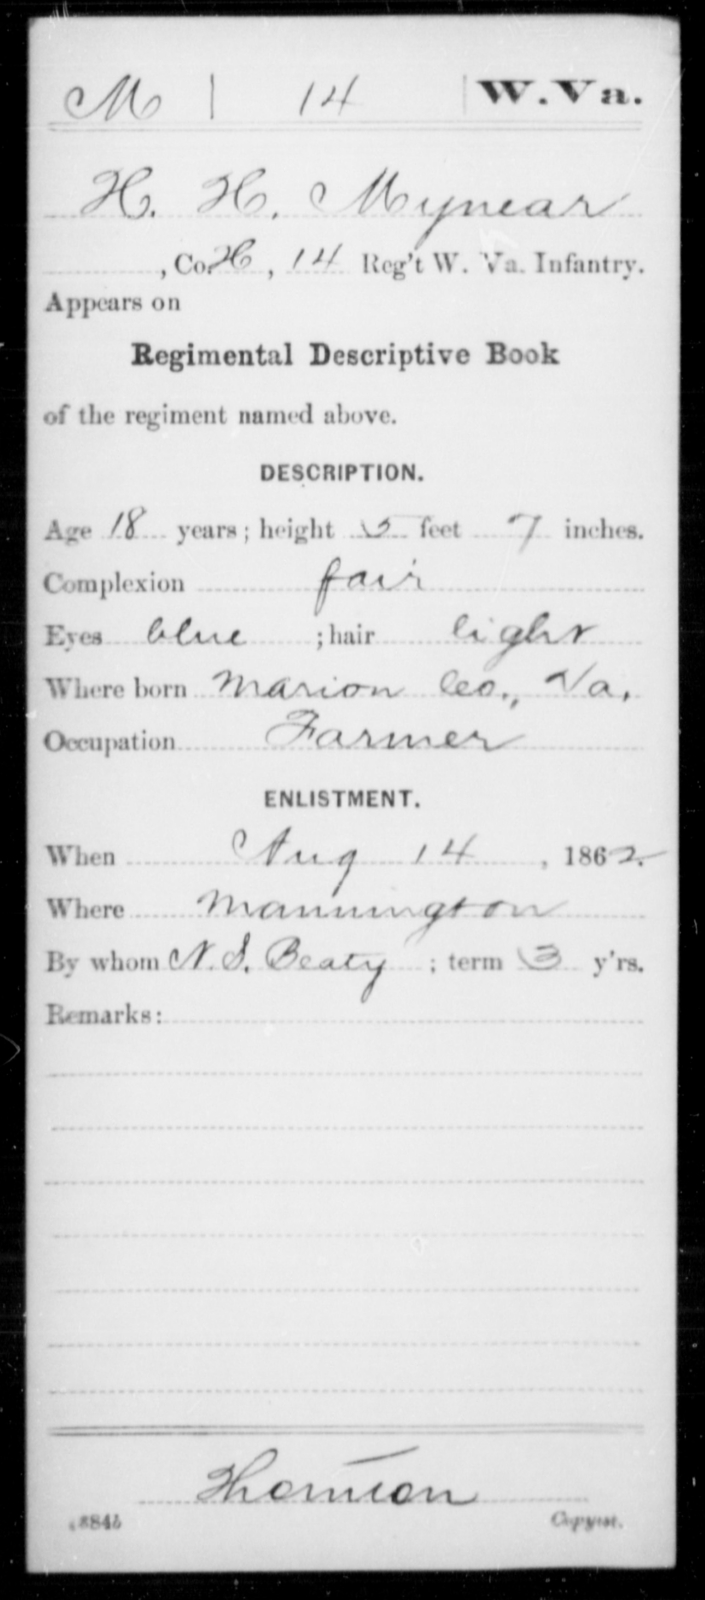 Mynear, H H - Age 18, Year: 1862 - Miscellaneous Card Abstracts of Records - West Virginia